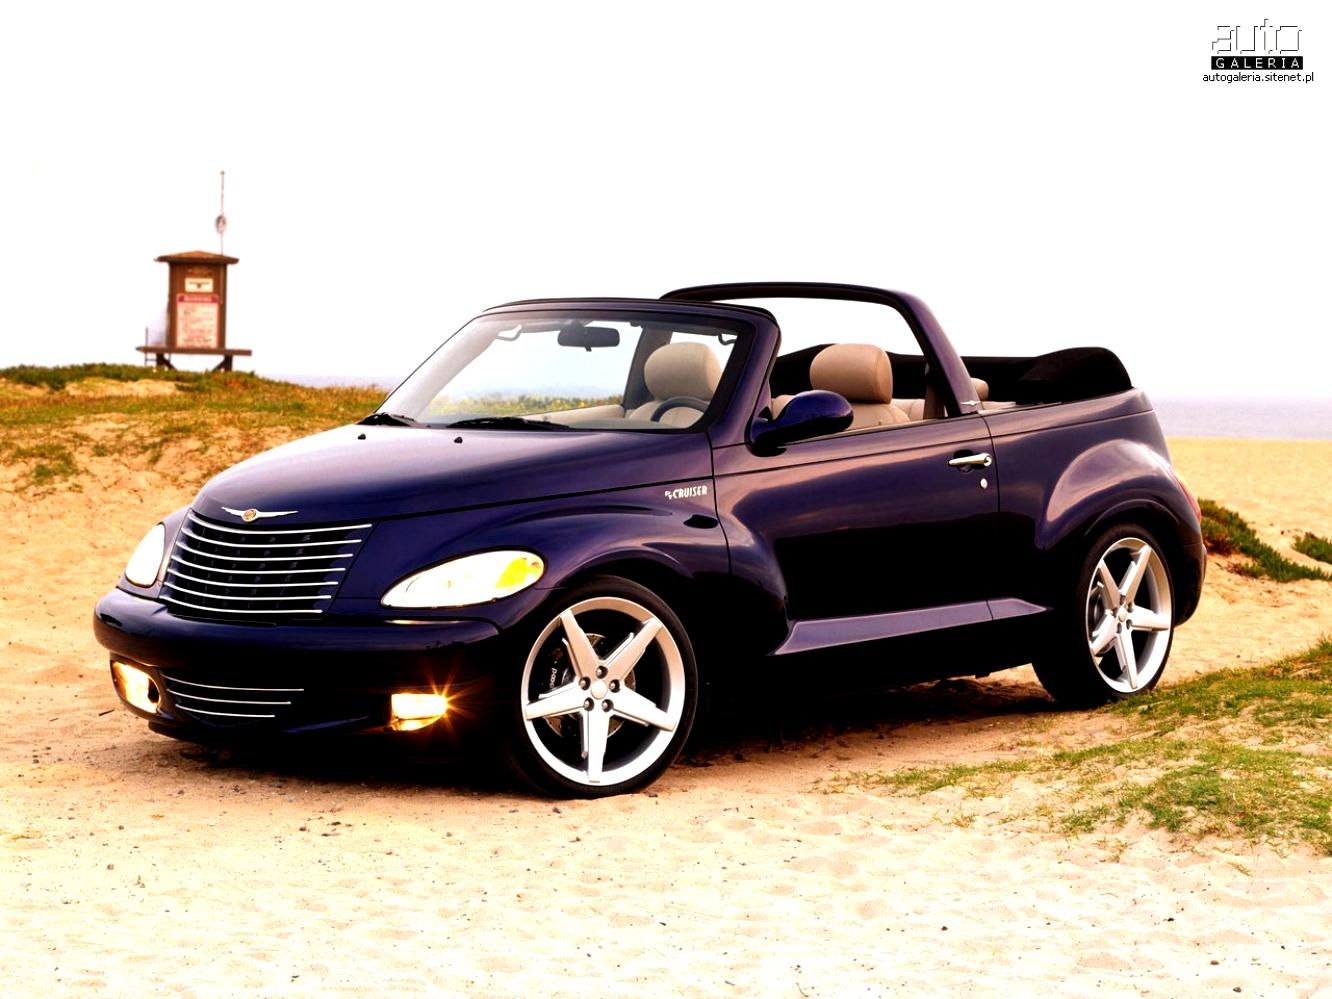 Chrysler Pt Cruiser Convertible 2004 6